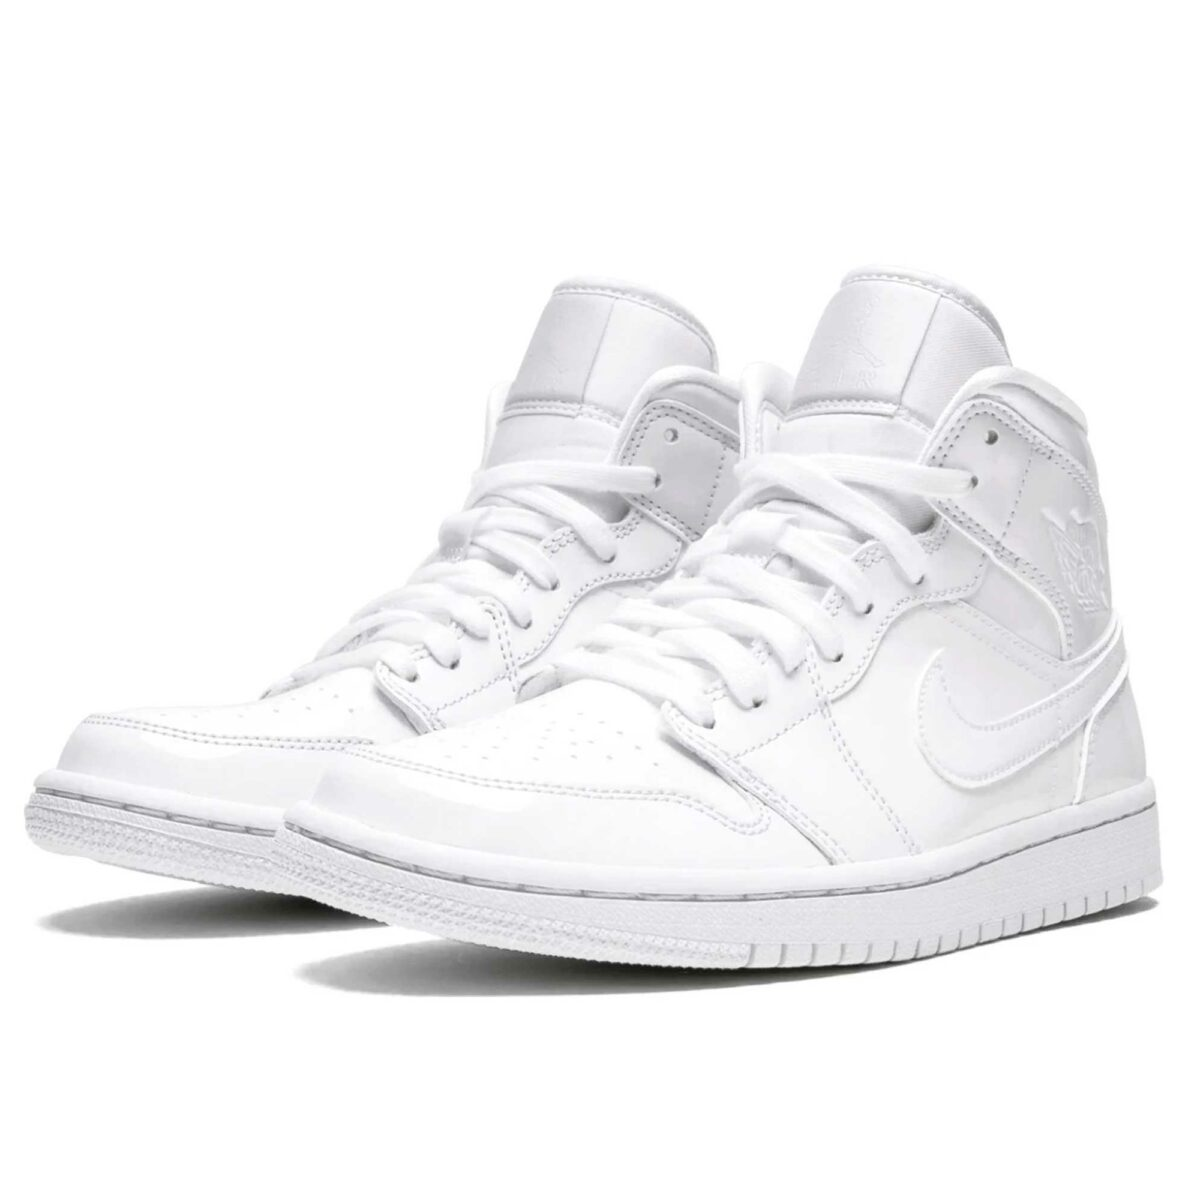 nike air jordan 1 mid triple white patent leather BQ6472_111 купить